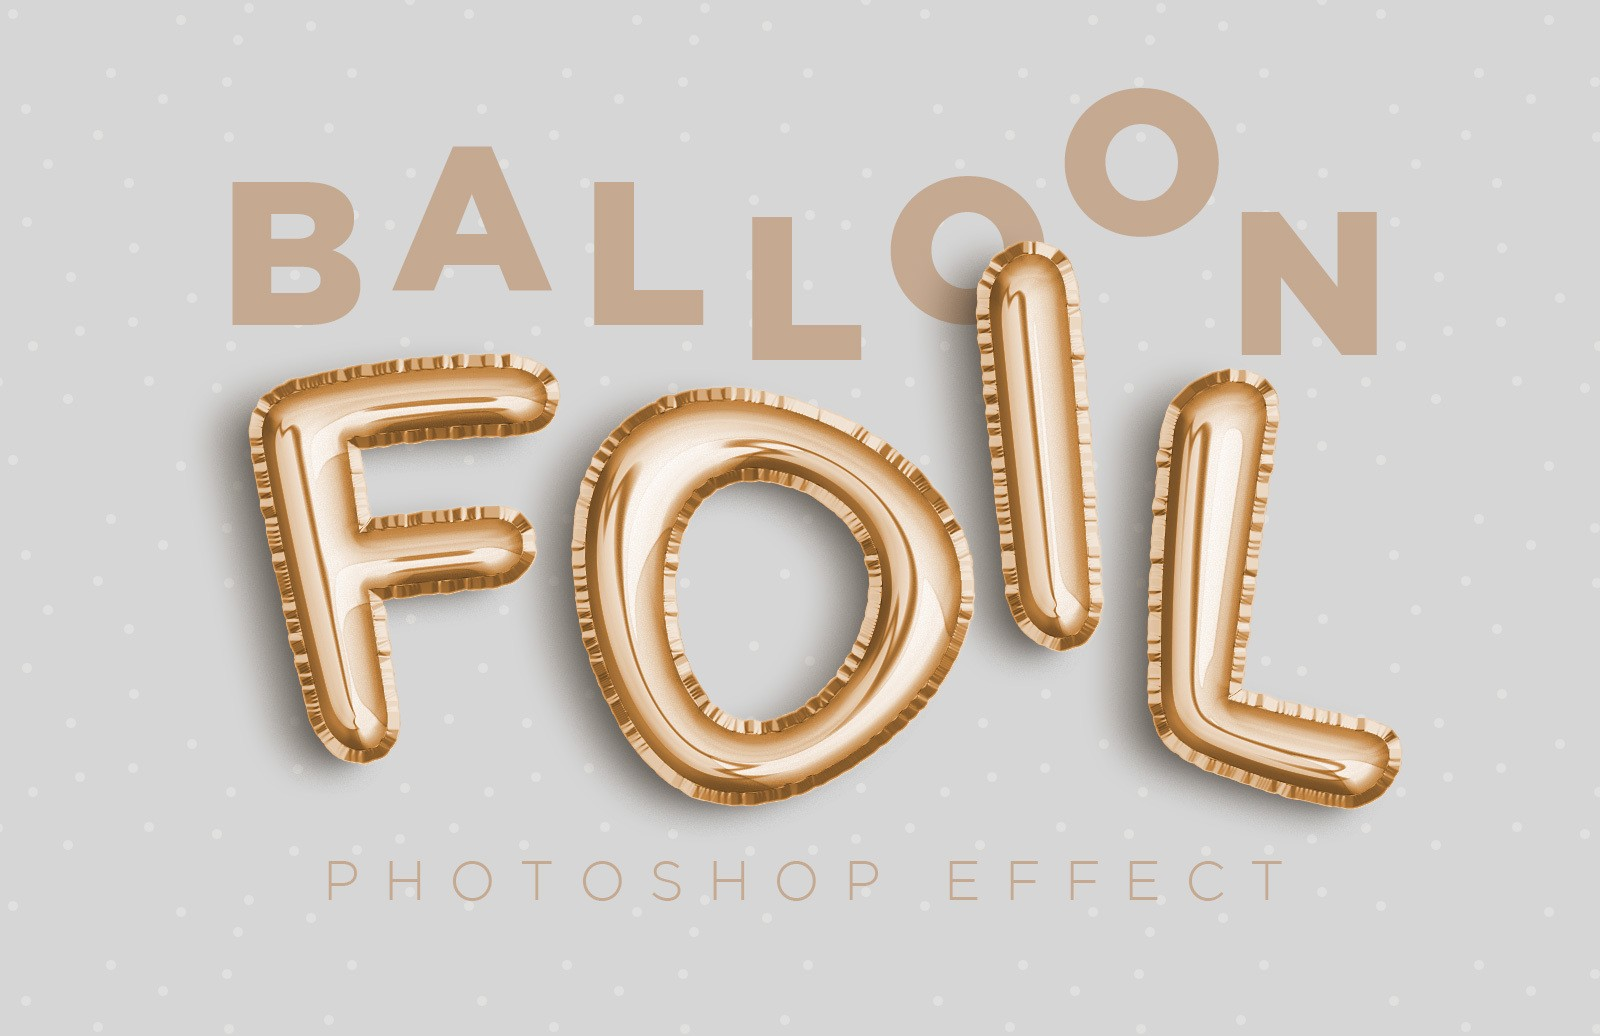 Balloon Foil Effect Preview 1